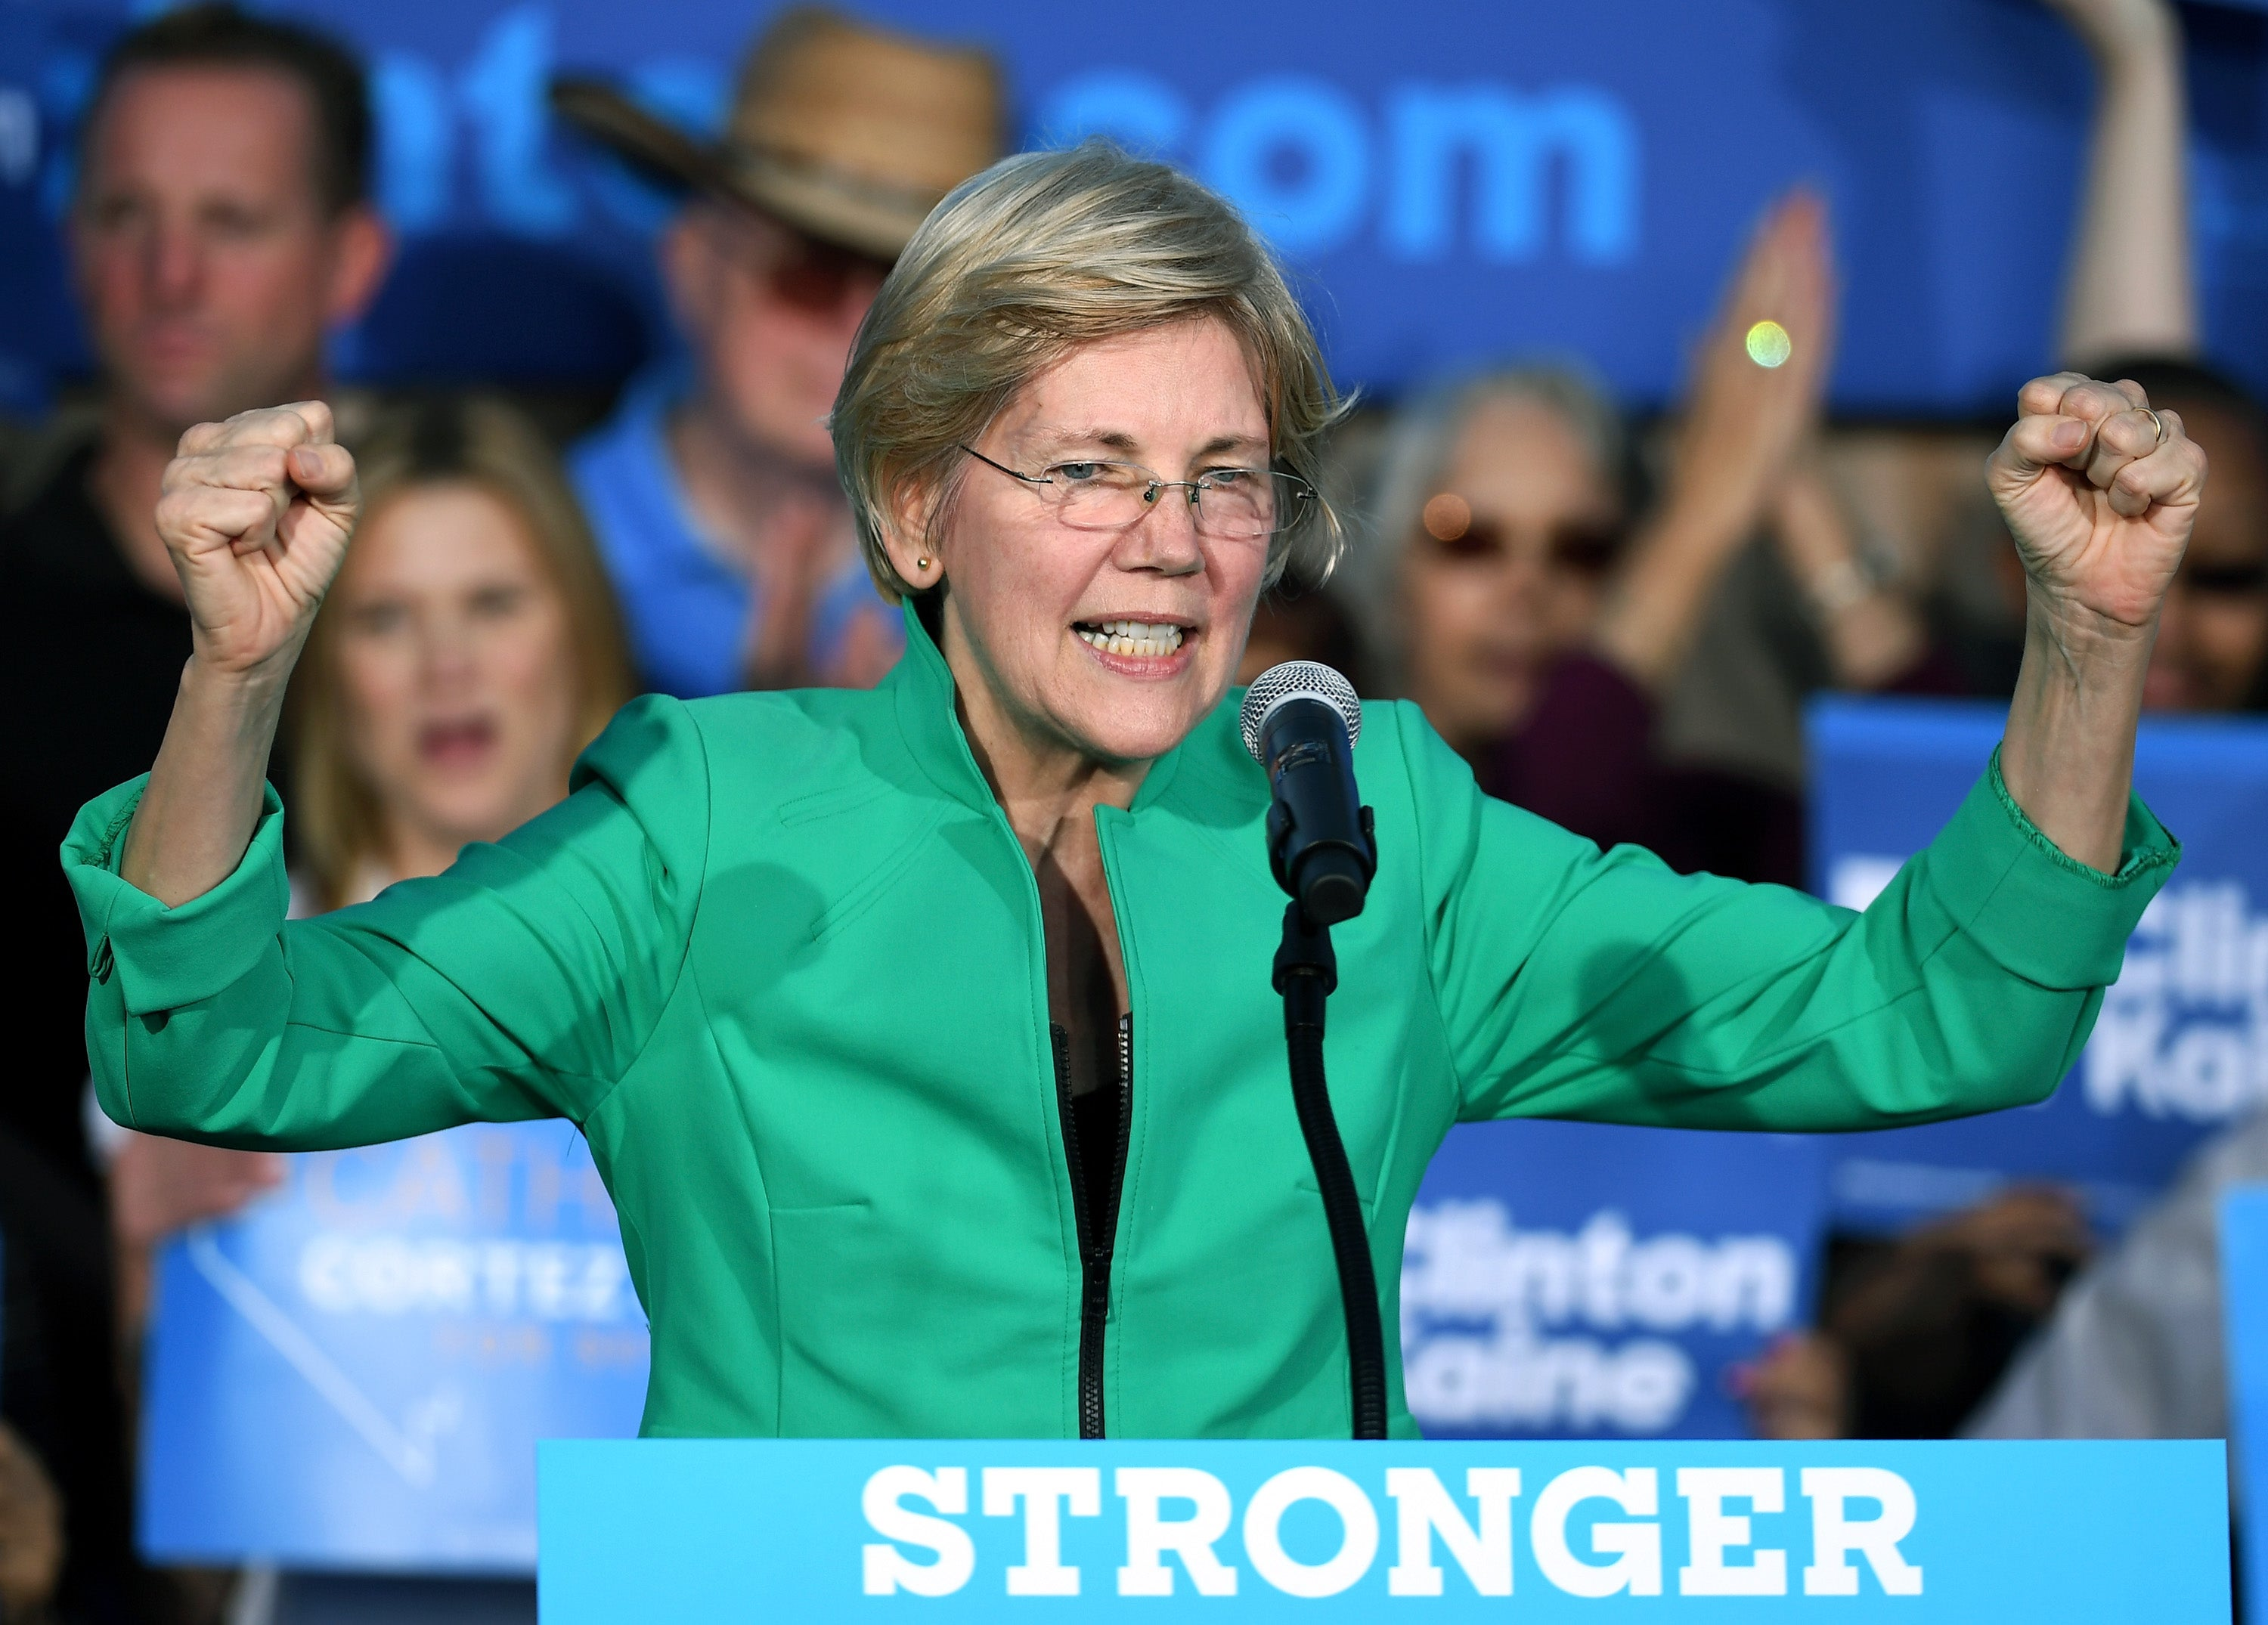 Elizabeth Warren Pulls Ahead Of Bernie Sanders In New Poll